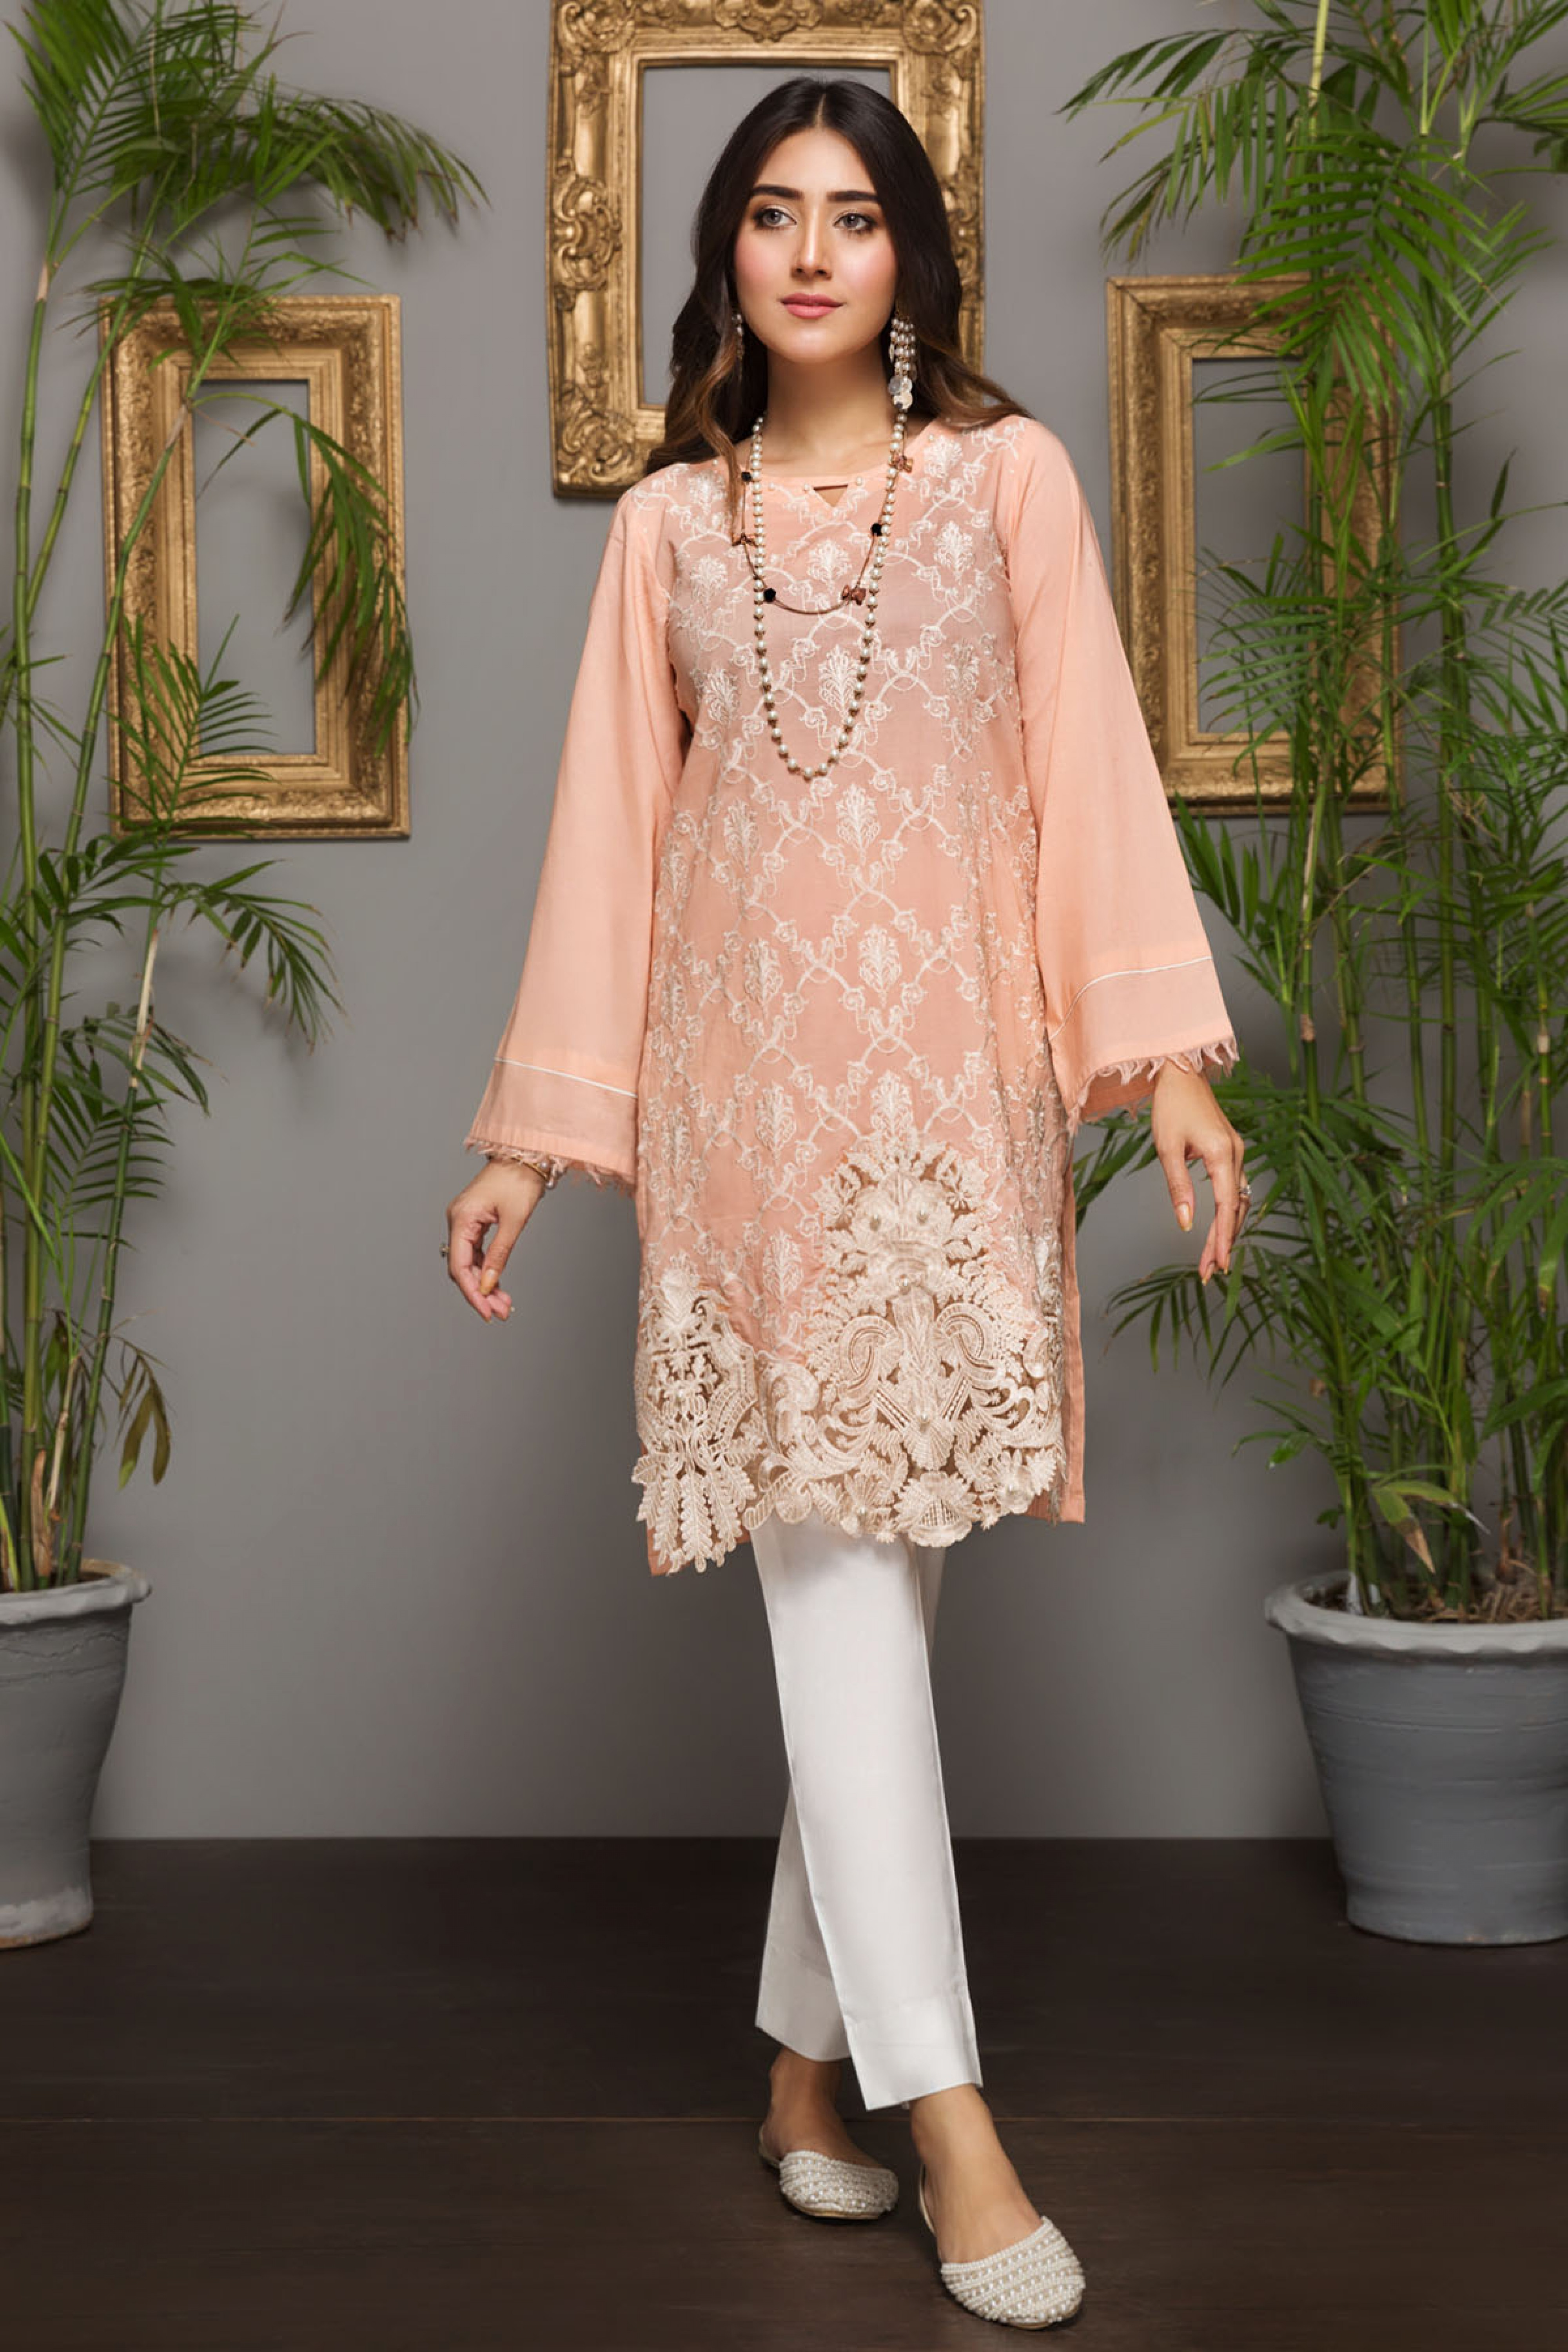 PEACH MELODY (EMBROIDERED SHIRT)